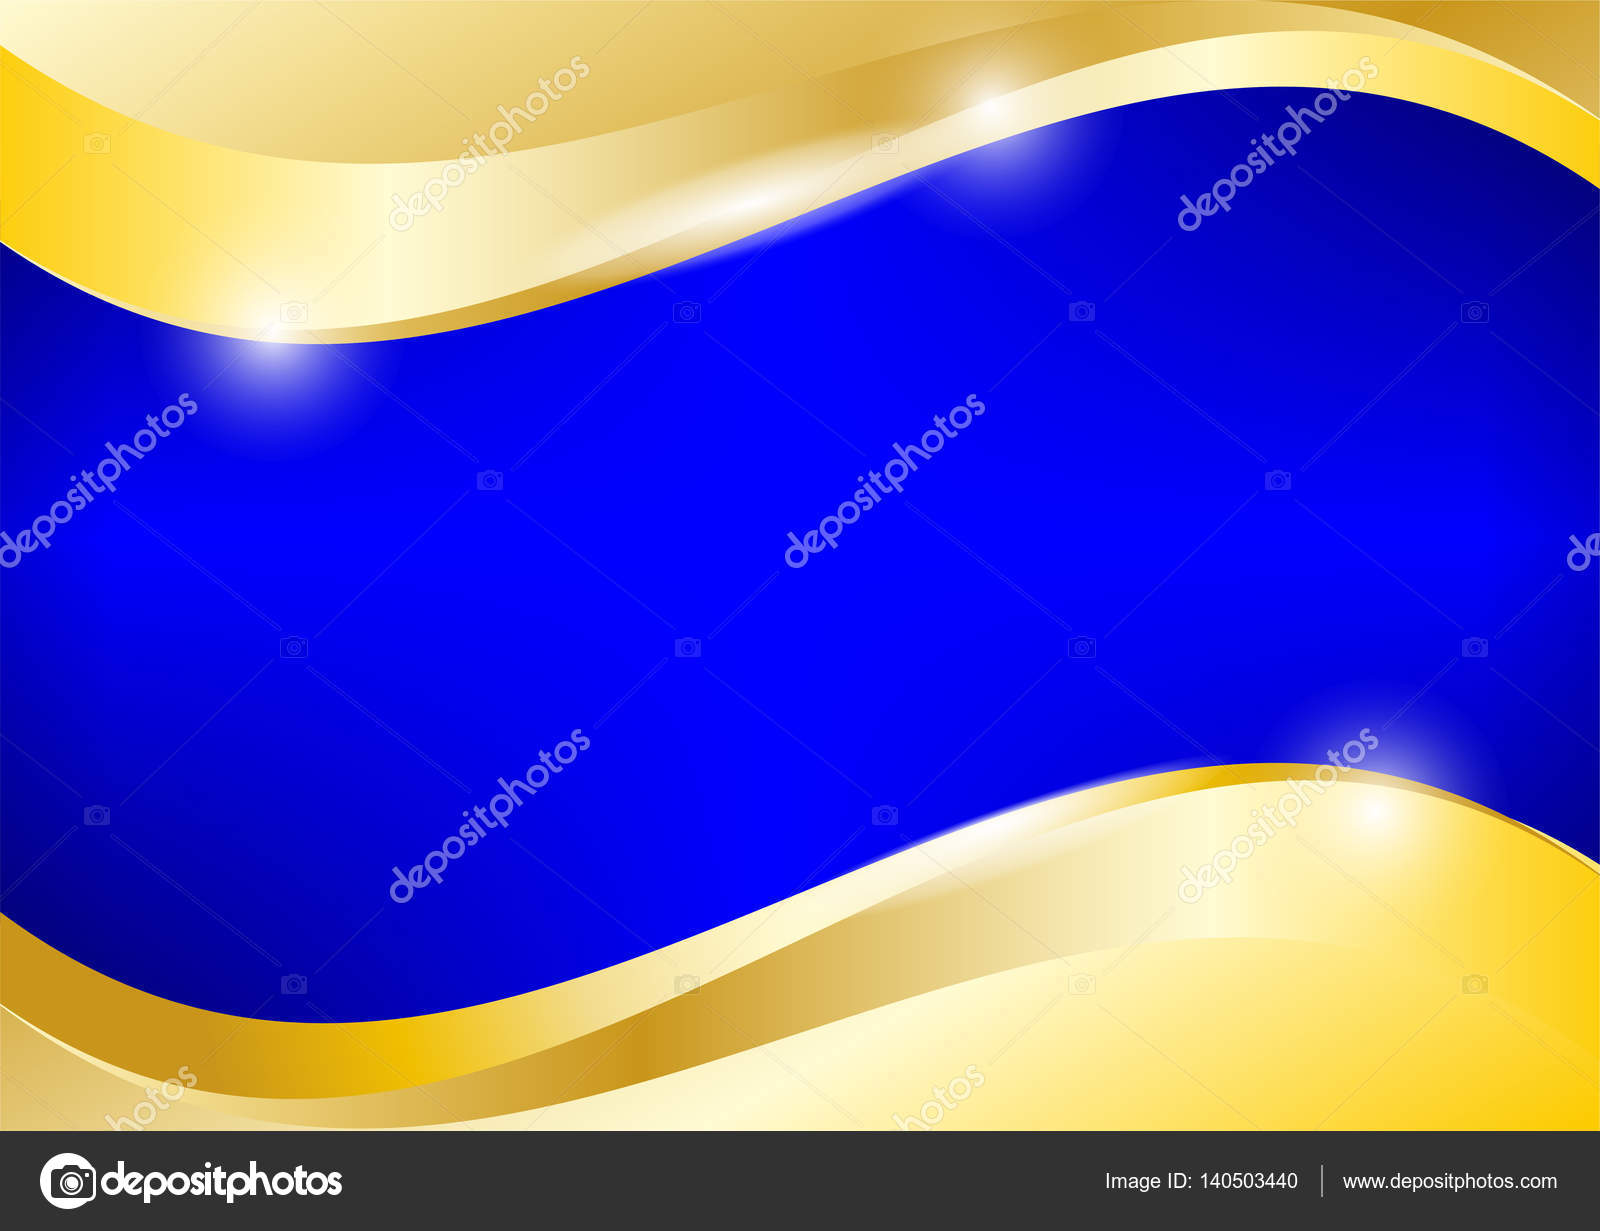 Background Blue And Gold Designs Blue And Gold Background Vector Graphic Design Stock Vector C Kanawatvector 140503440